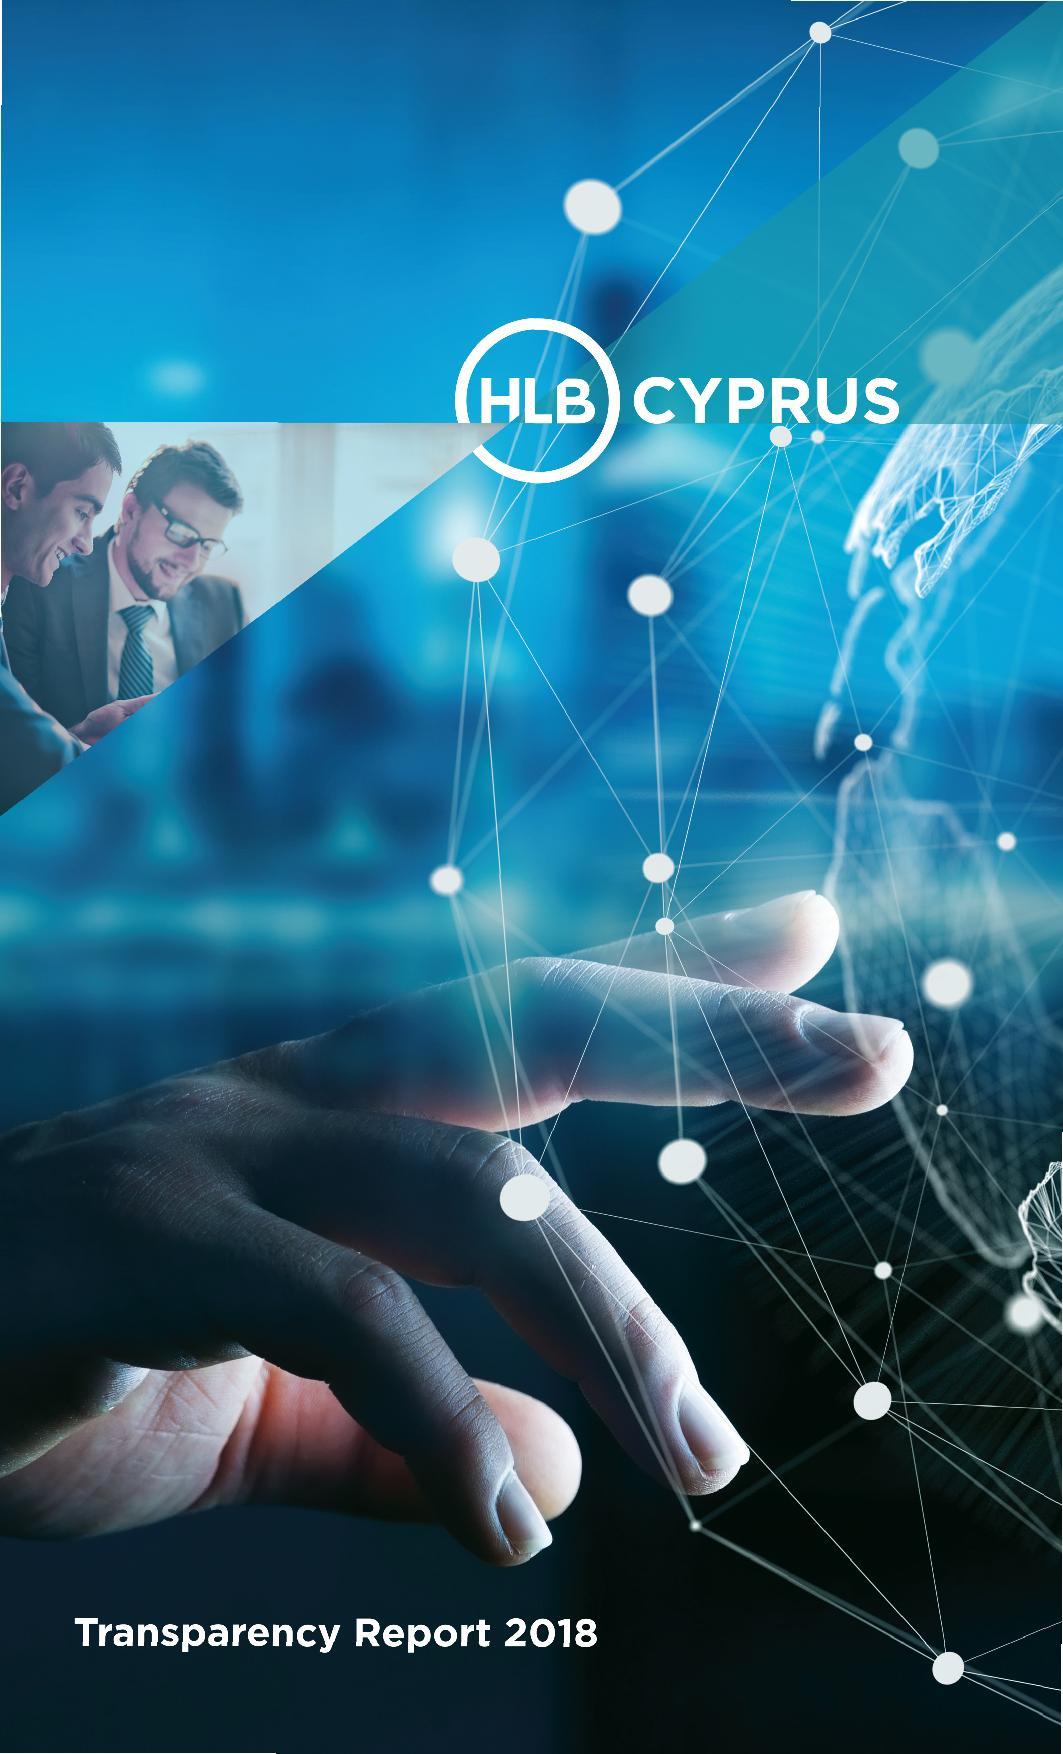 HLB: Transparency Report 2018